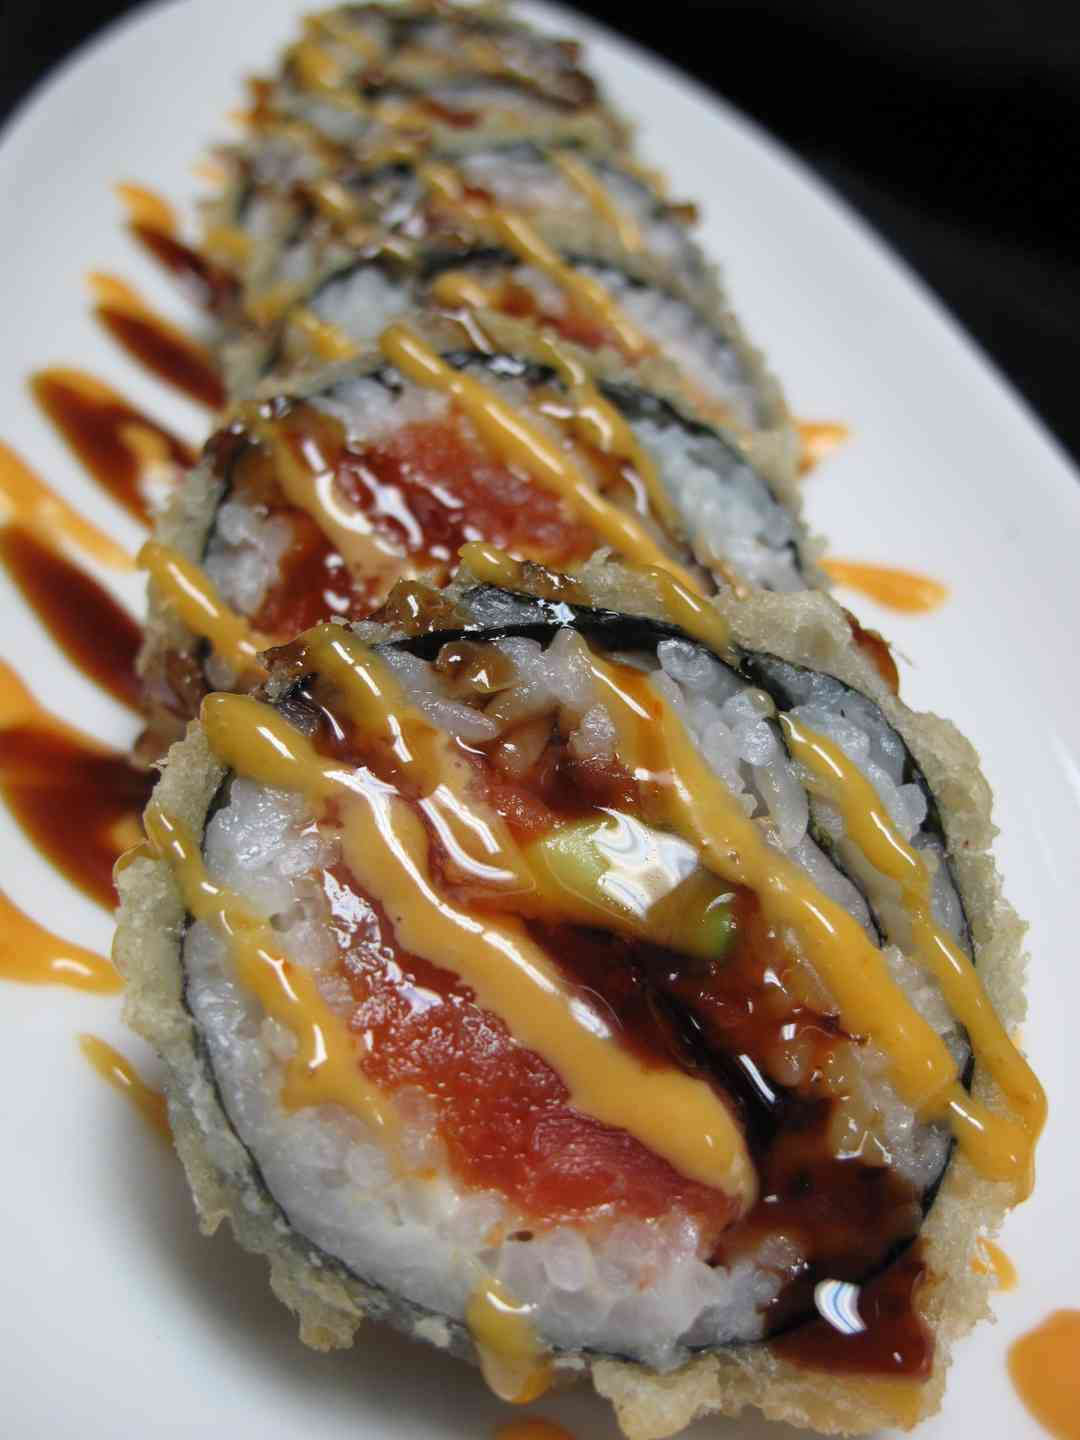 Spicy Tuna Crunchy Roll*